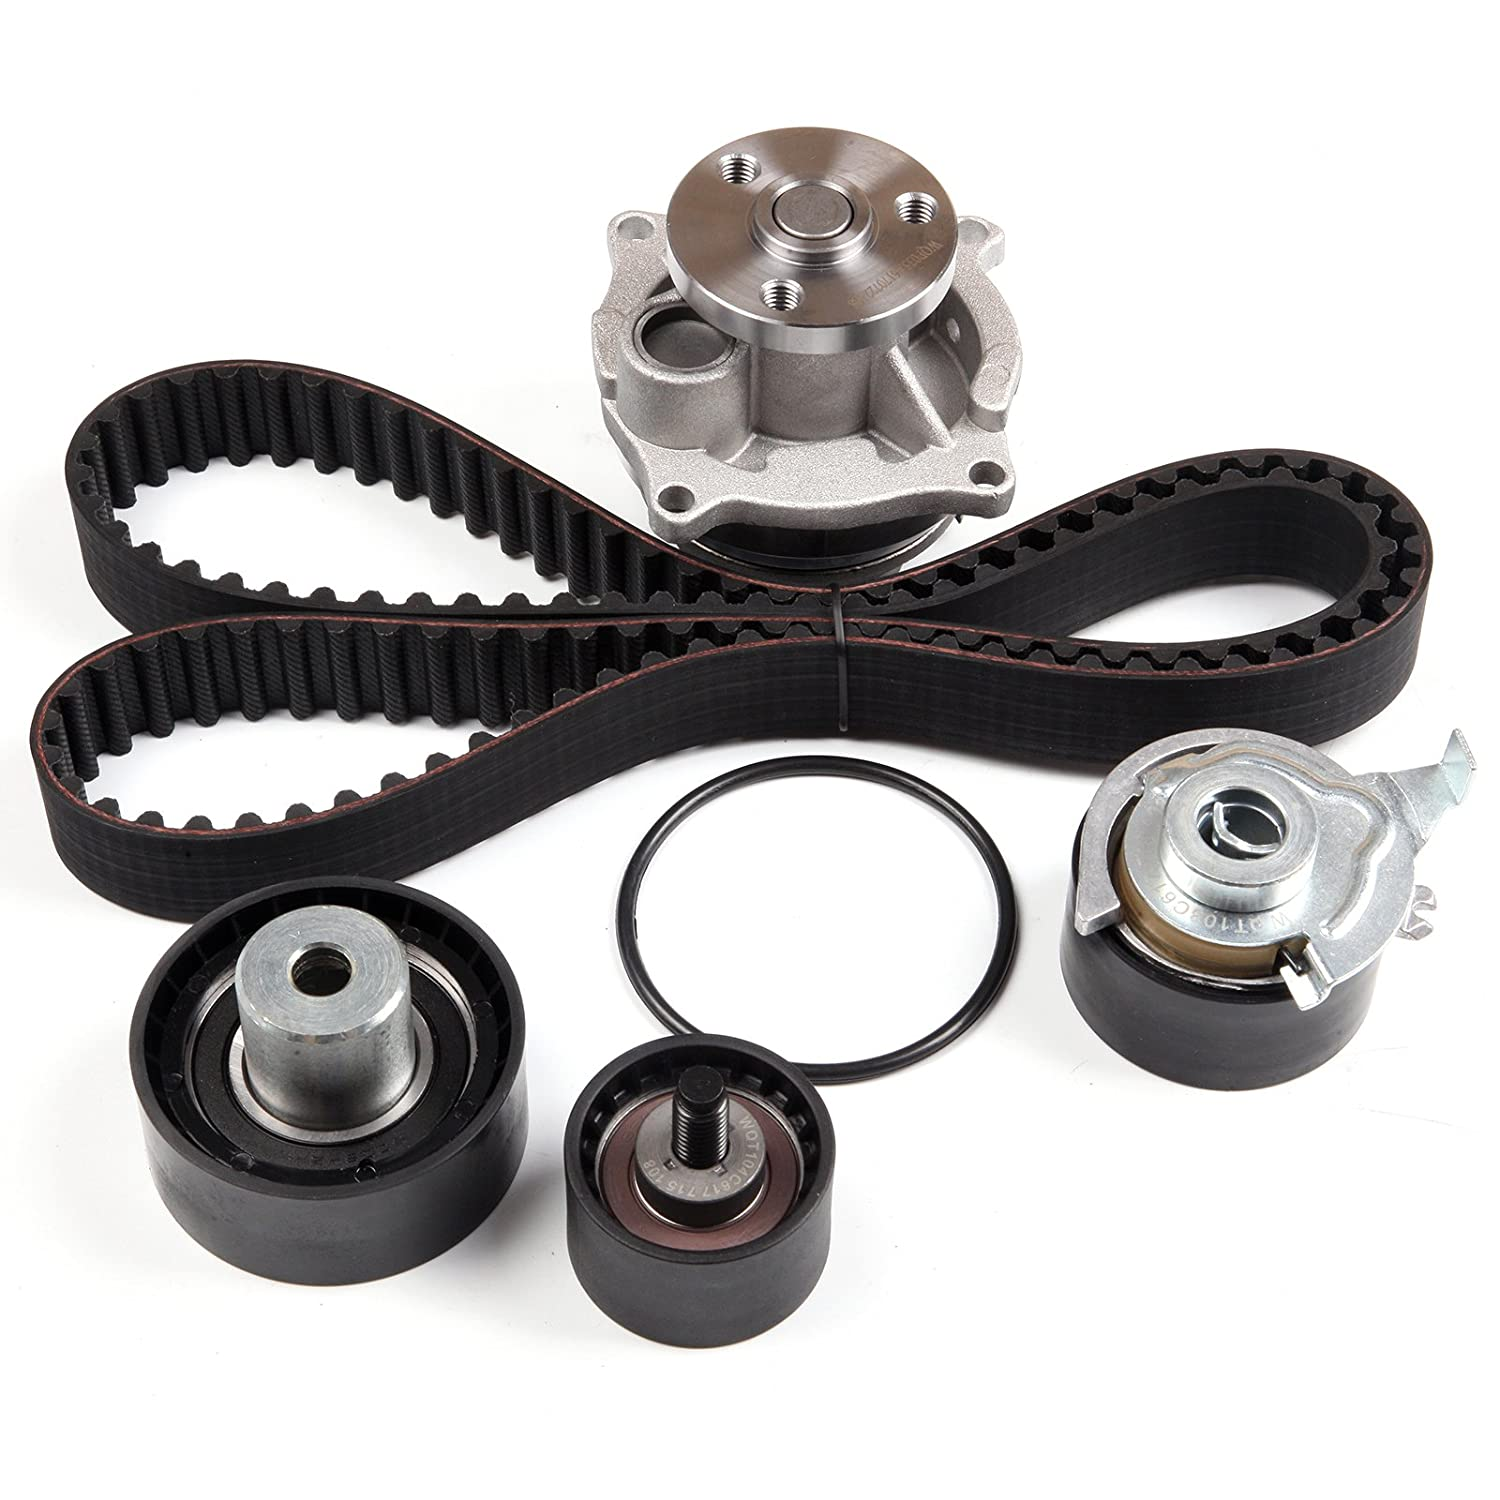 Scitoo Timing Belt Water Pump Kit For 98 99 Mercury Wiring Harness 1999 Ford Mystique Contour 20l L4 Vin 3 Automotive